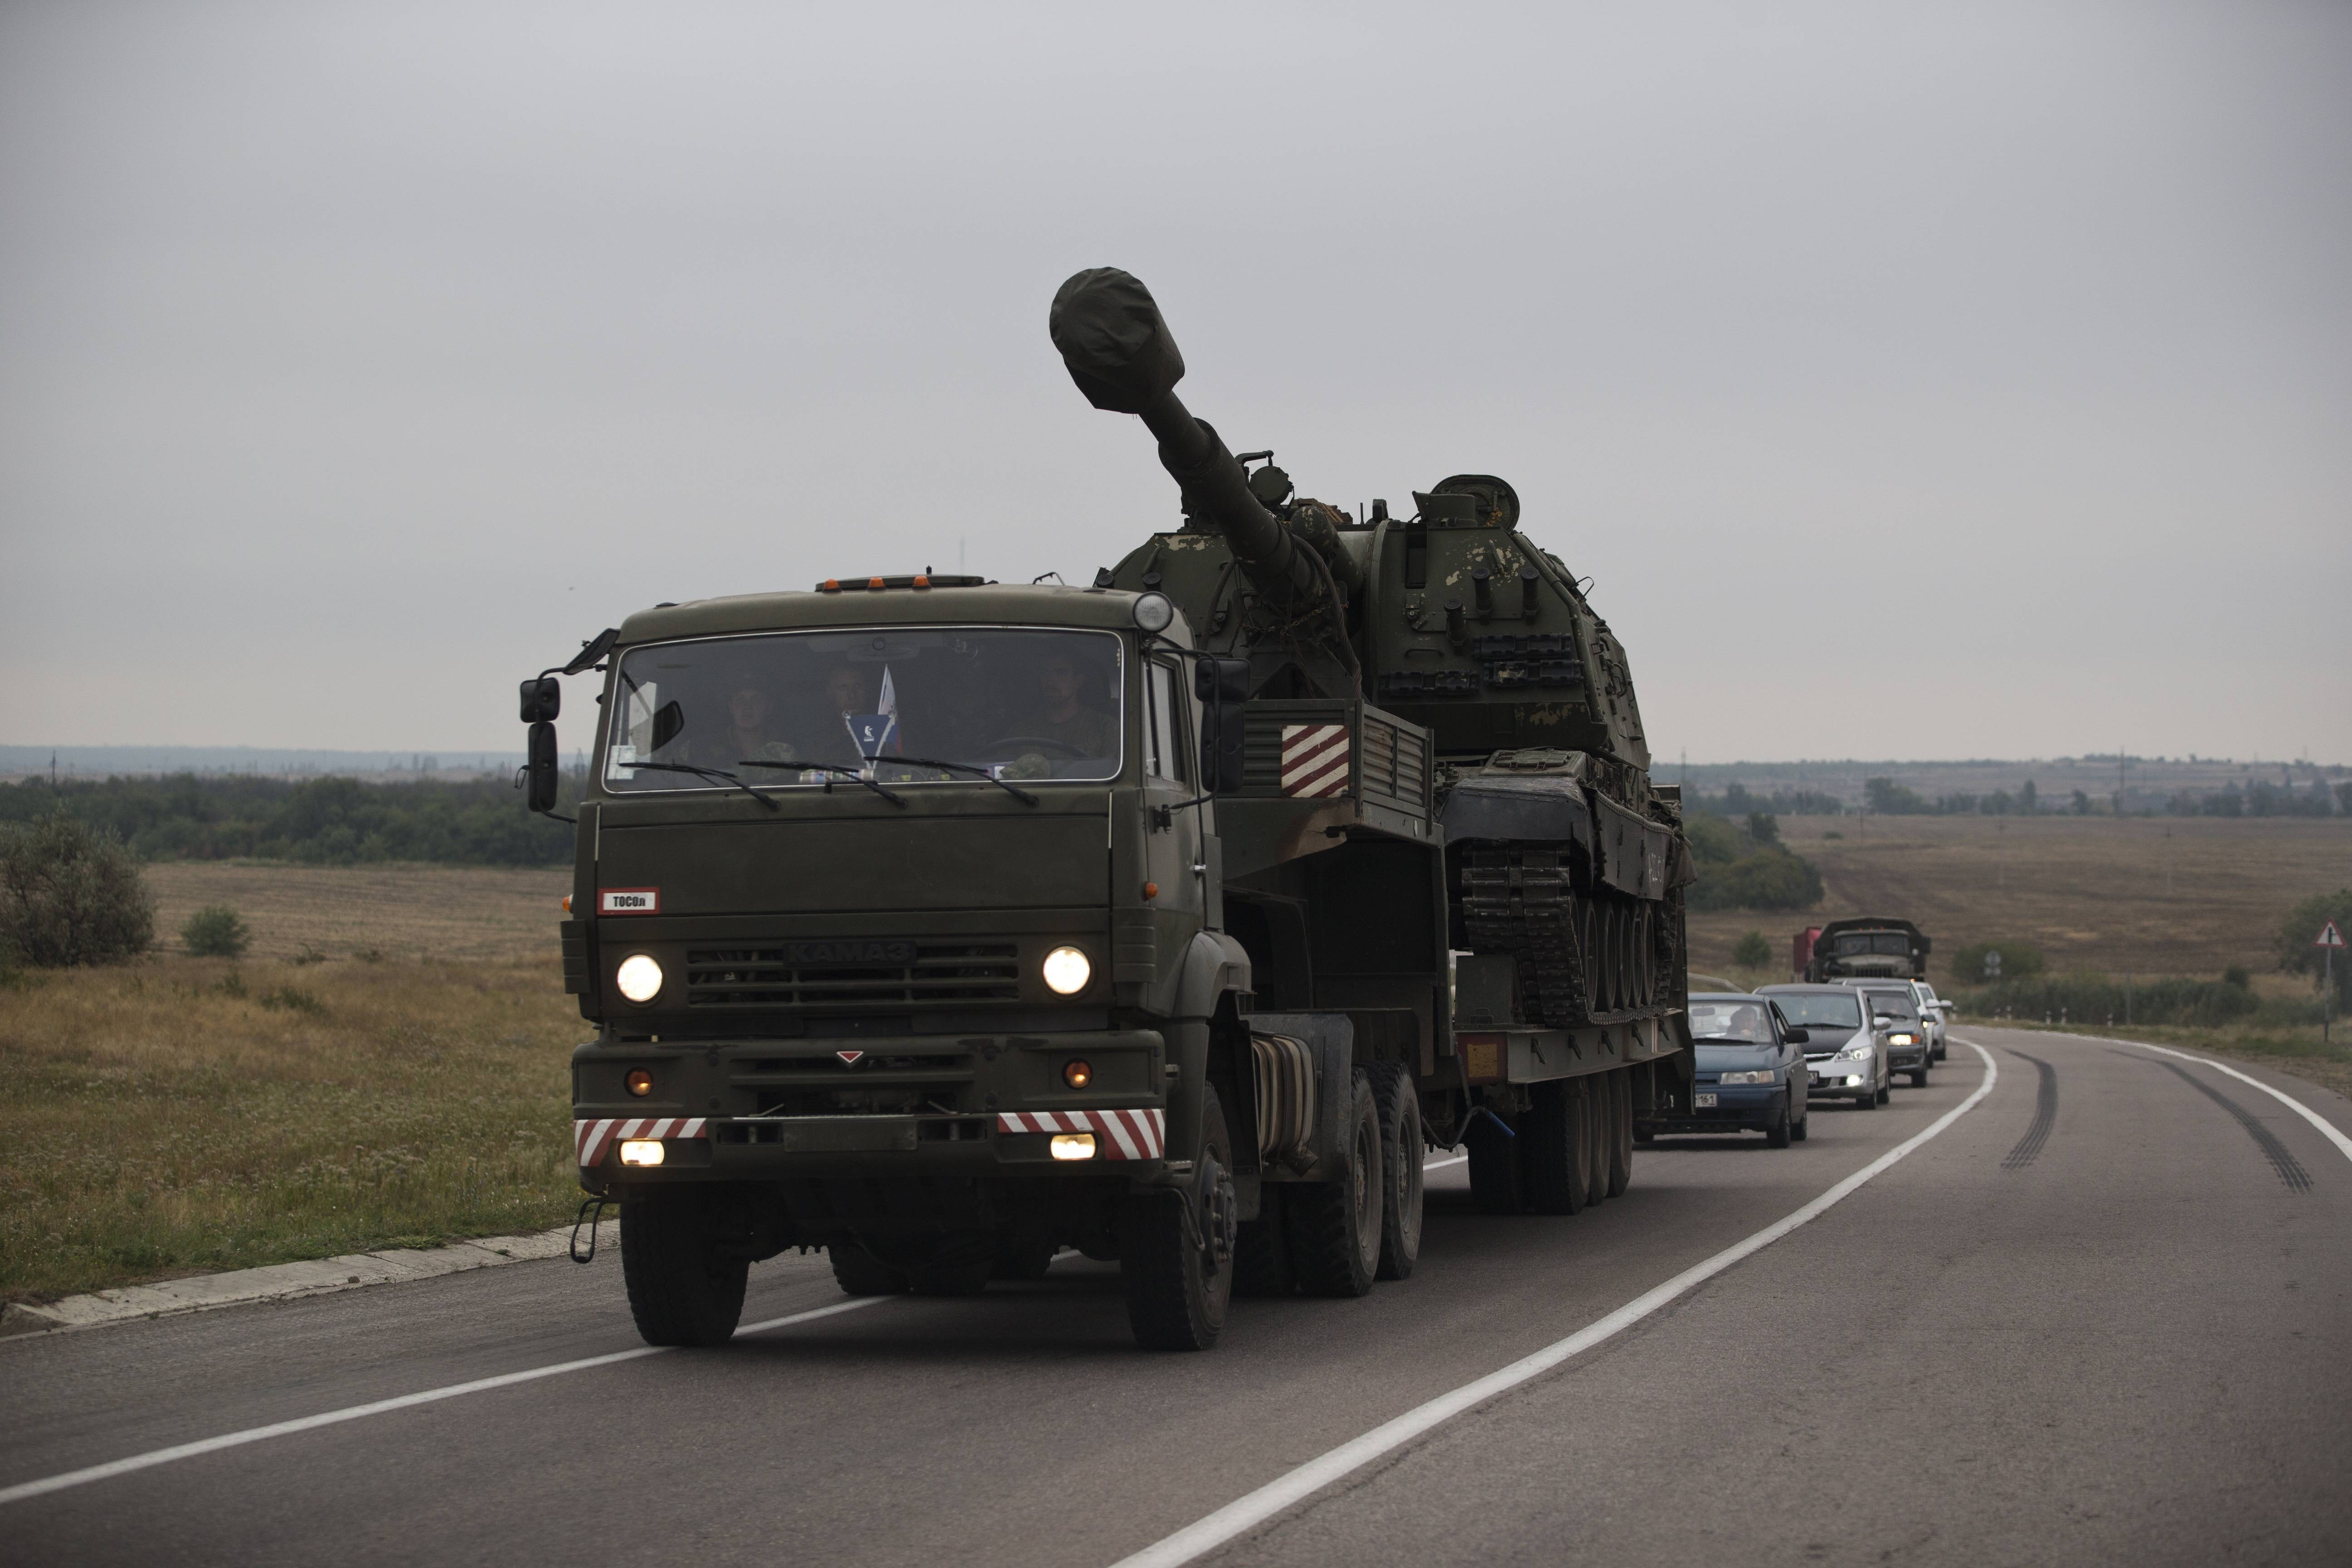 A Russian military truck carries a MSTA-S self-propelled howitzer about 10 kilometers from the Russia-Ukrainian border control point at town Donetsk, Rostov-on-Don region, Russia, Tuesday, Aug. 19, 2014.